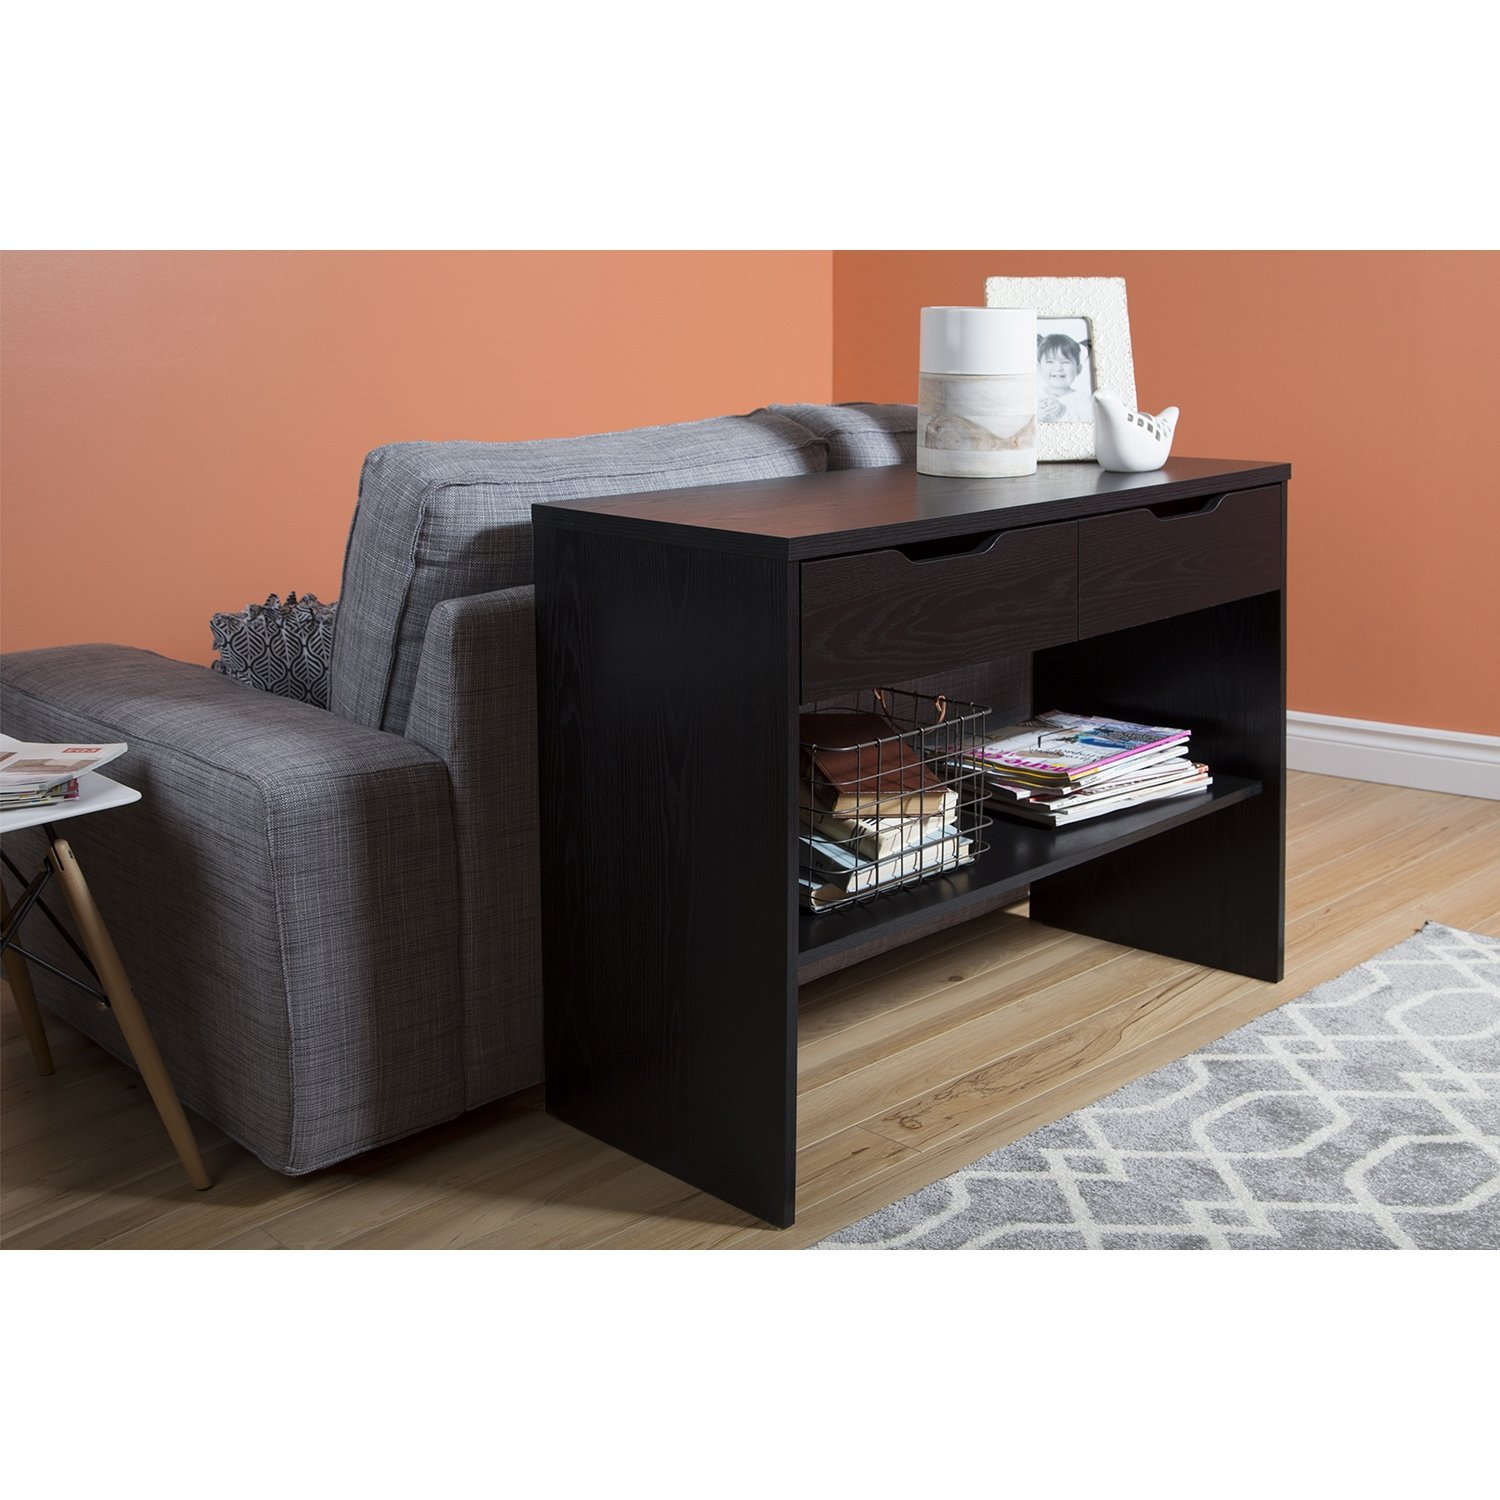 Flexible Console Table - 2 Drawers, Black Oak - SS-9045630